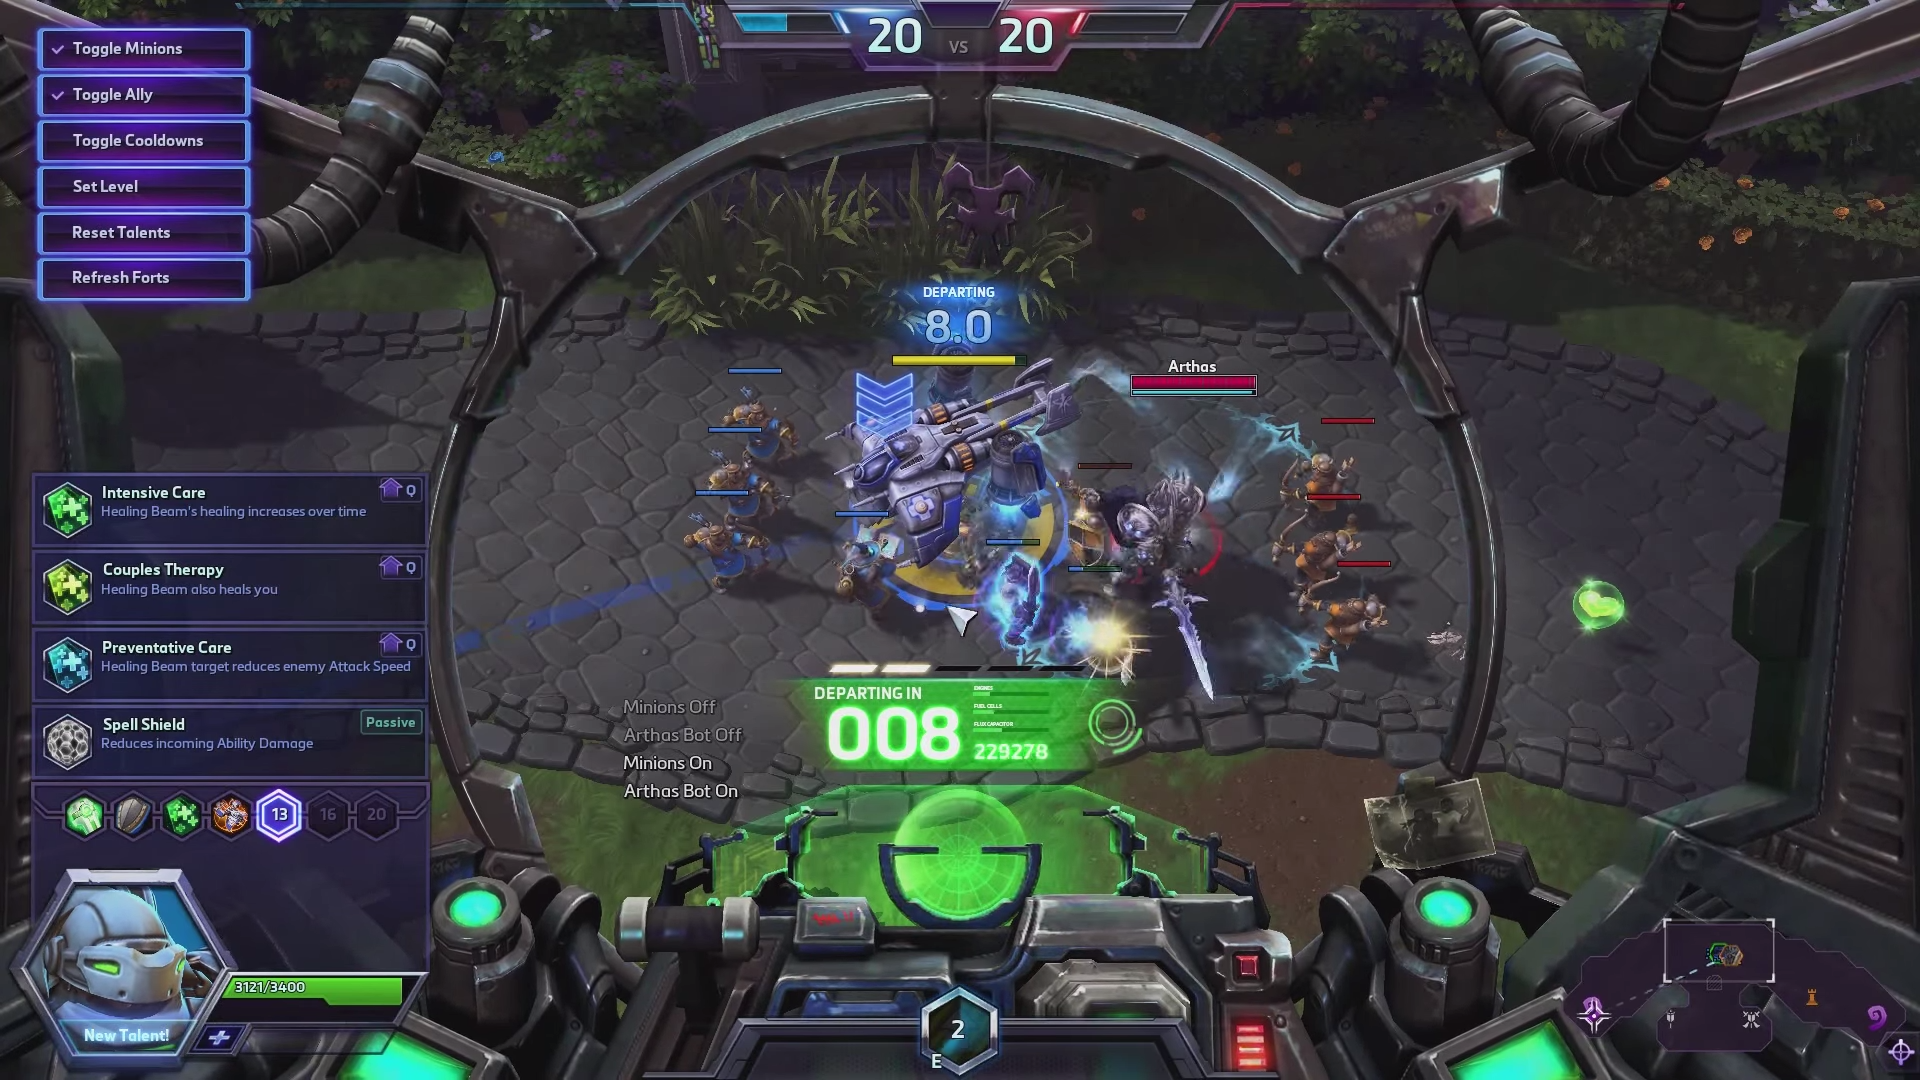 The Medic Has A Ridiculous Drop-Ship Power In Heroes Of The Storm